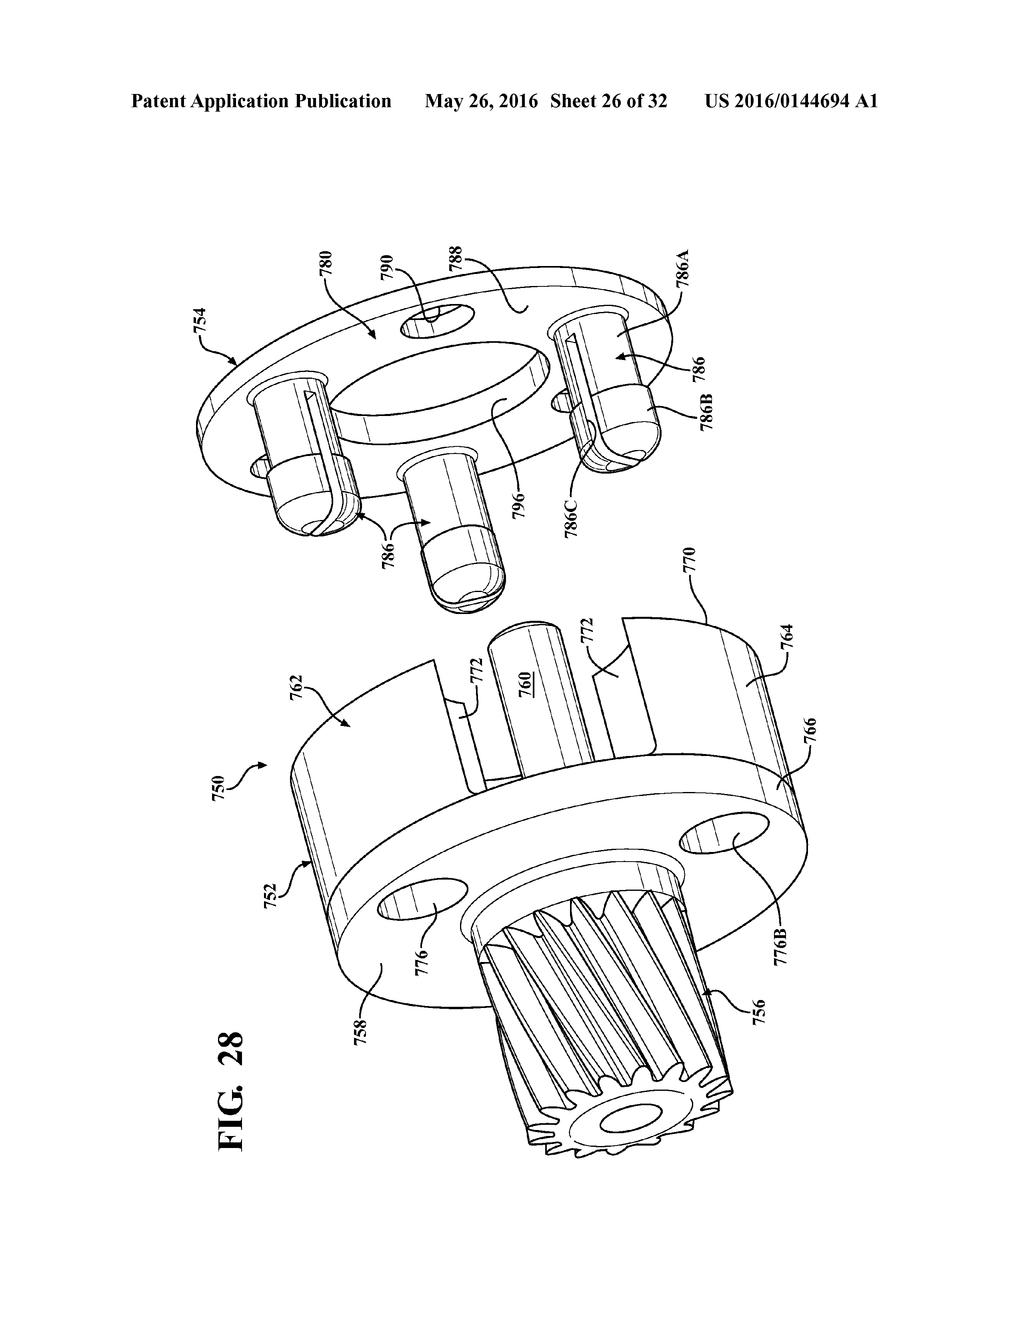 ELECTROMECHANICAL STRUT WITH MOTOR-GEARBOX ASSEMBLY HAVING DUAL